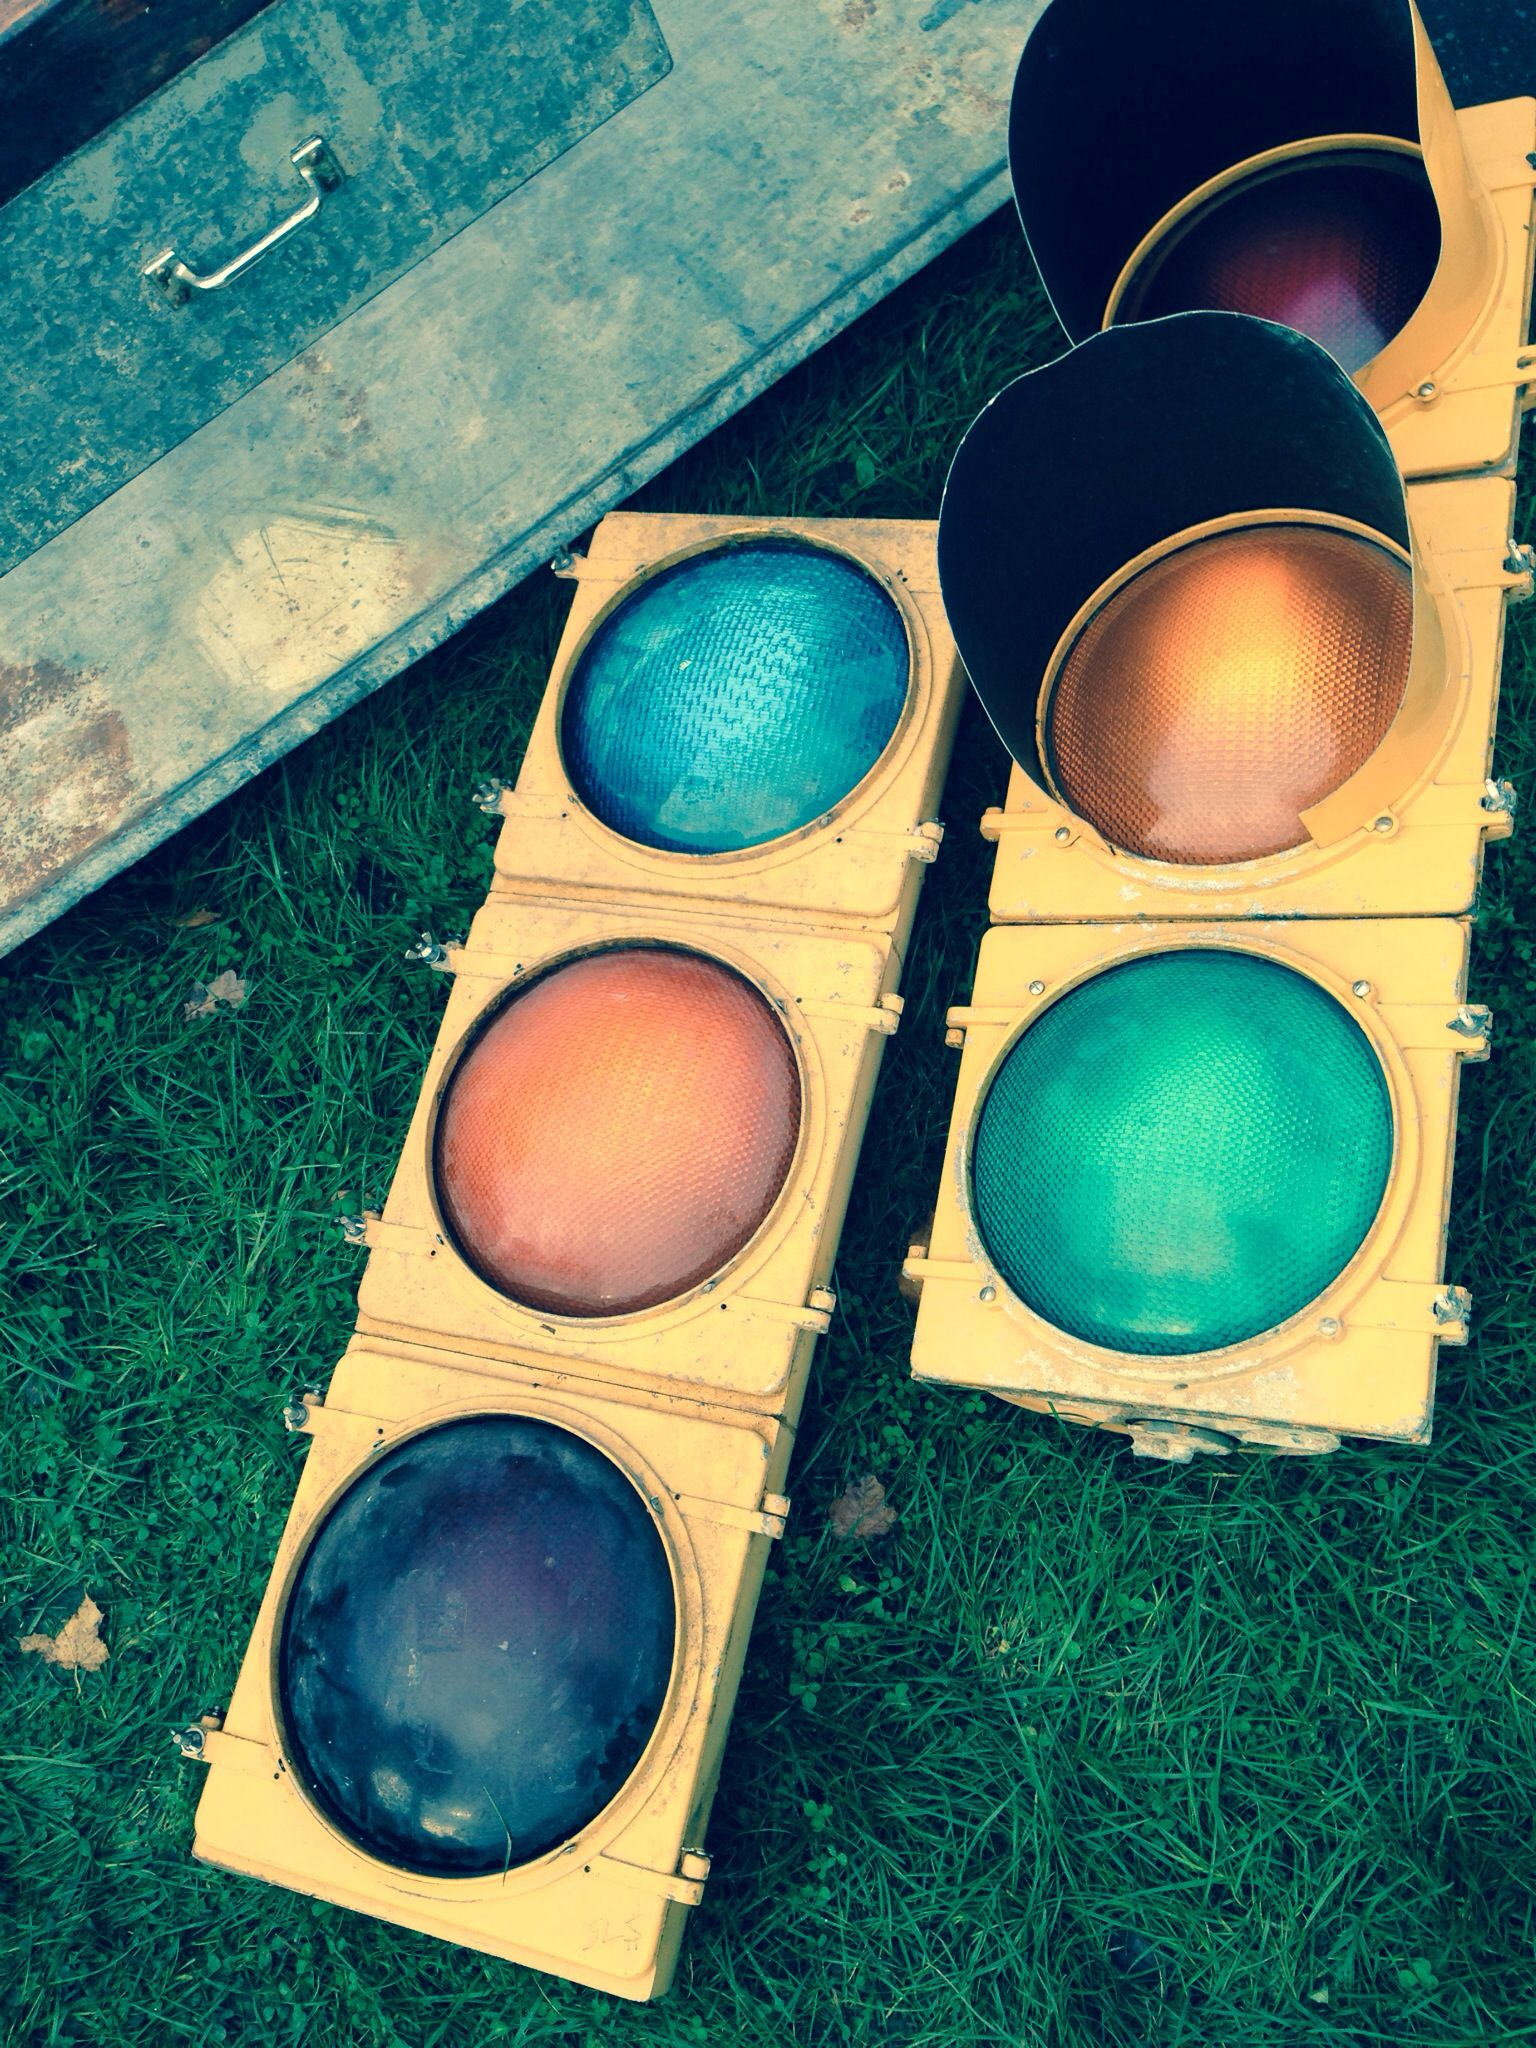 Vintage American traffic lights at Ardingly antiques fair: www.iacf.co.uk/Ardingly